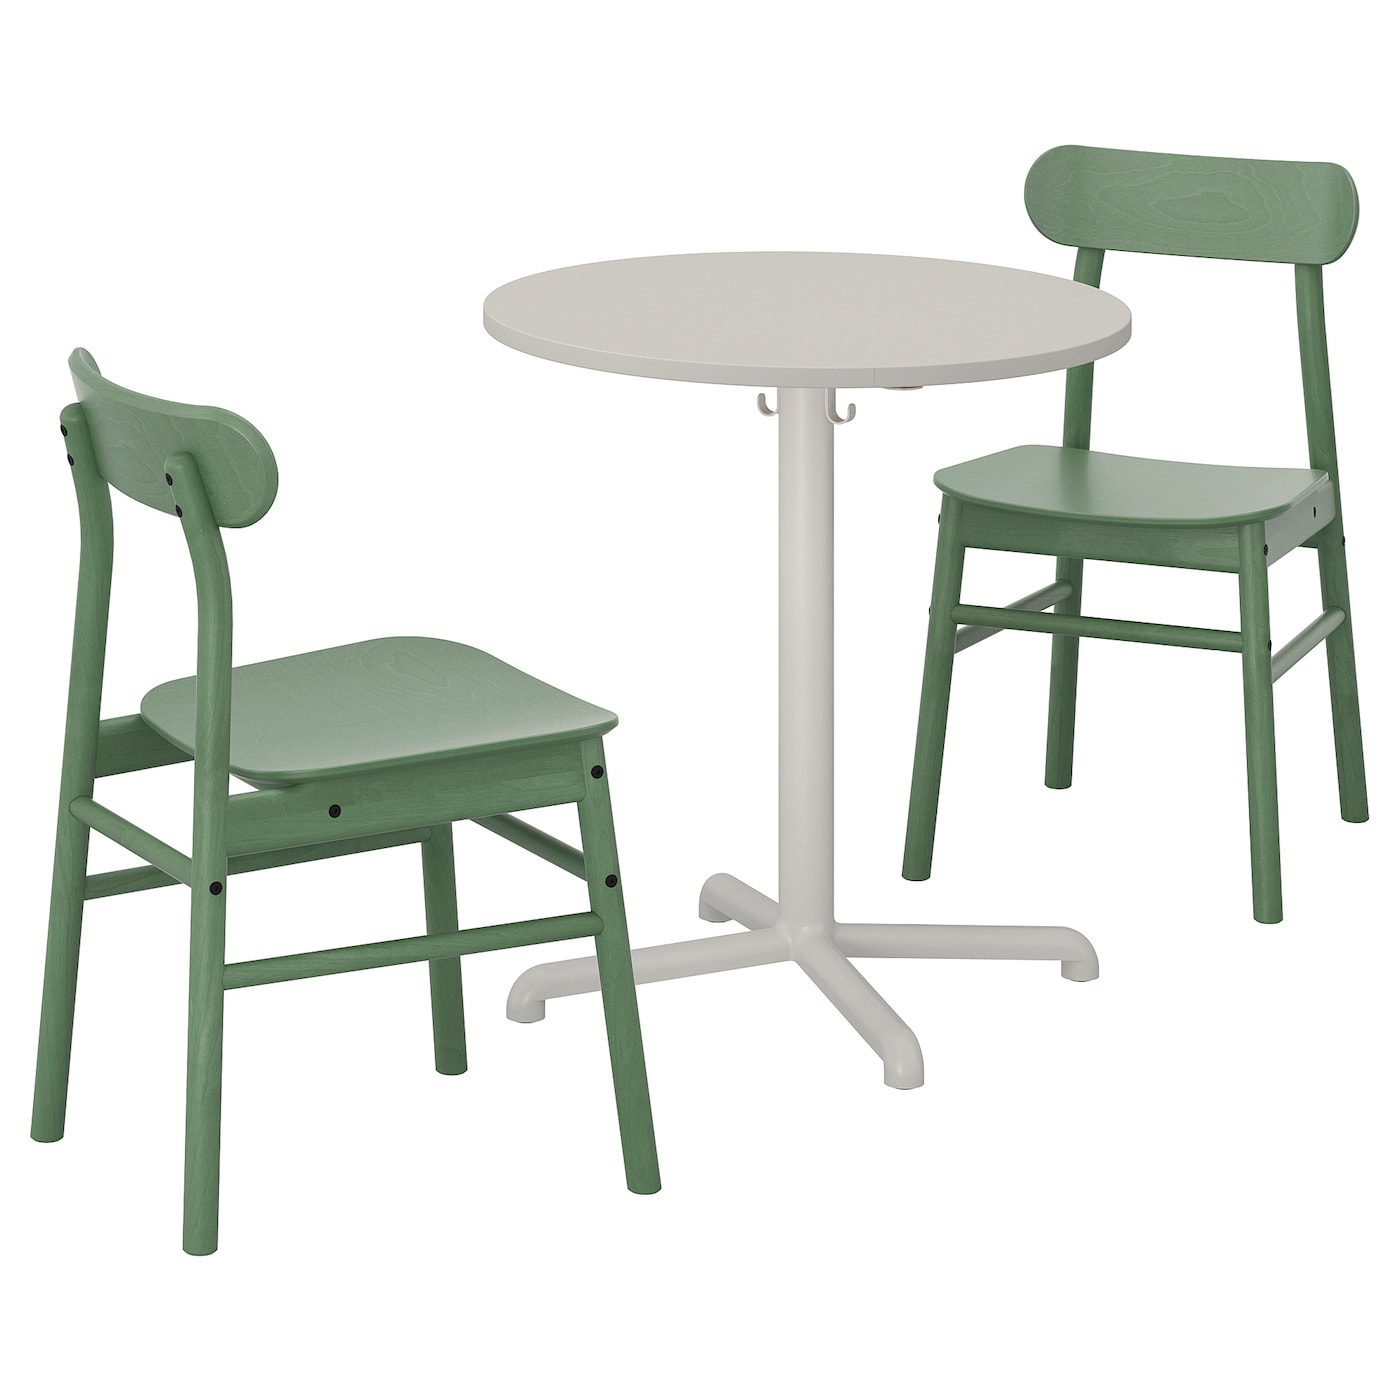 ele-roenninge-table-and-2-chairs__0680391_PE719840_S5